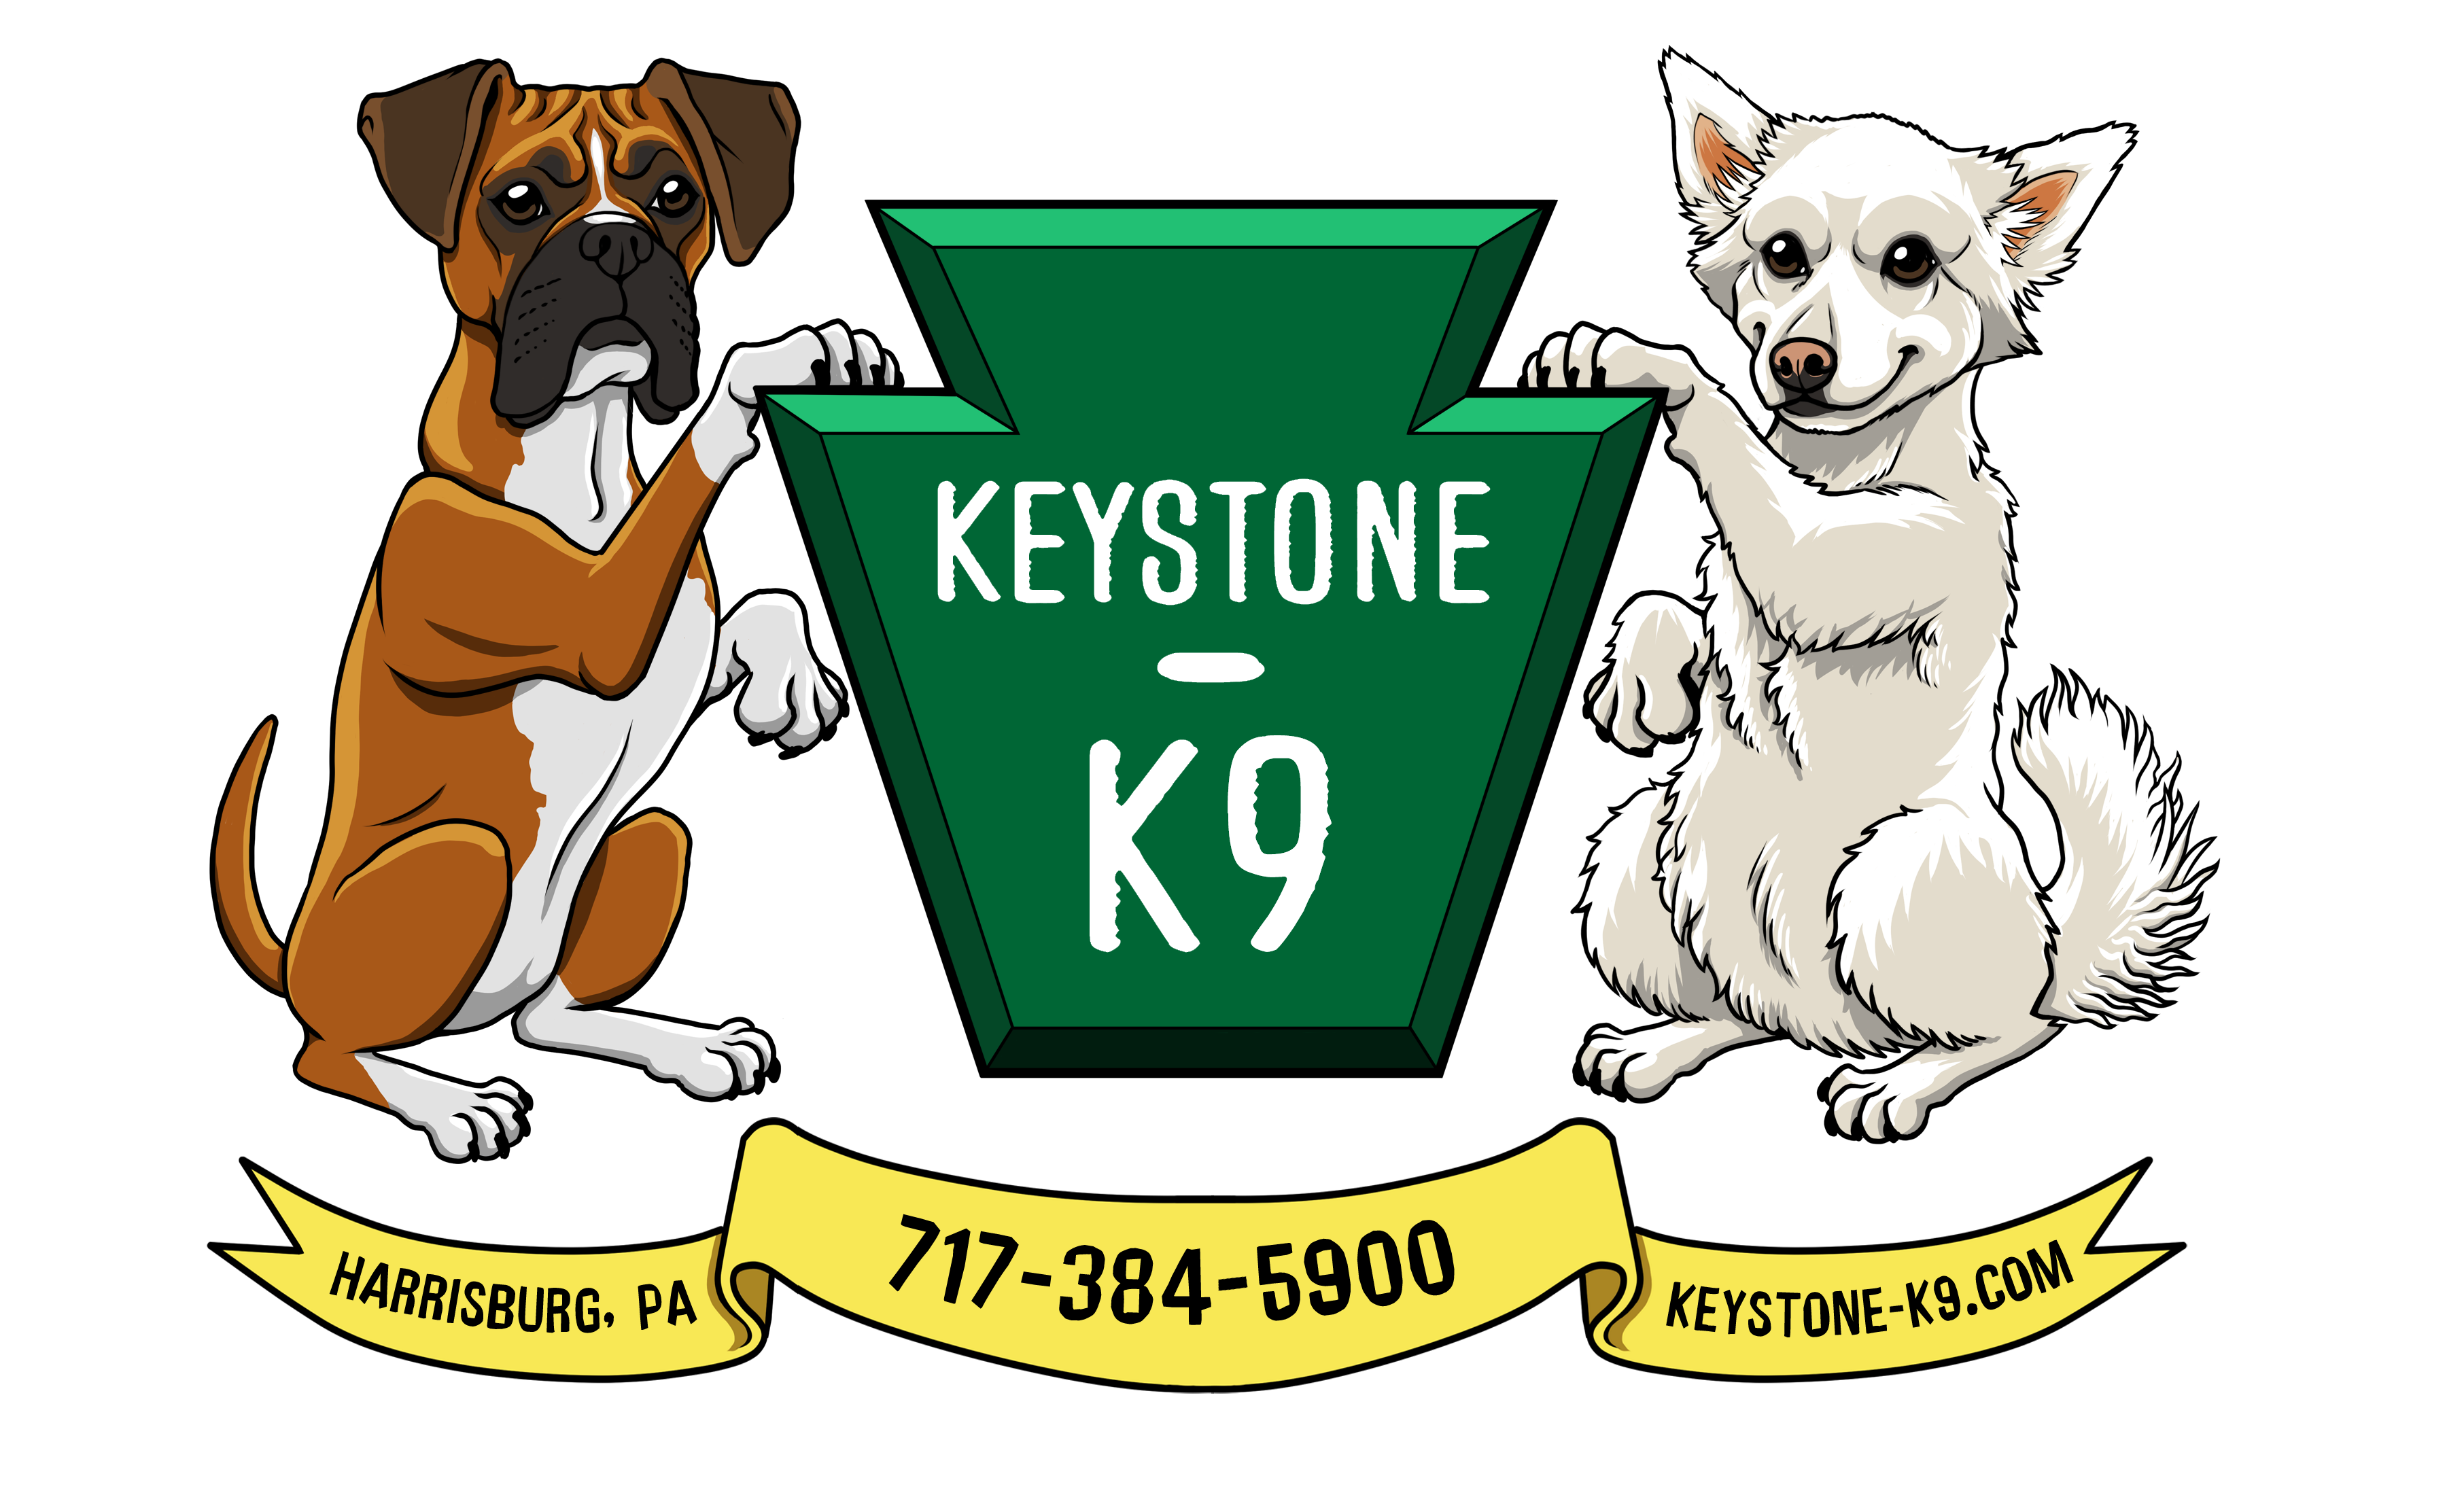 keystone k9 logo final.png